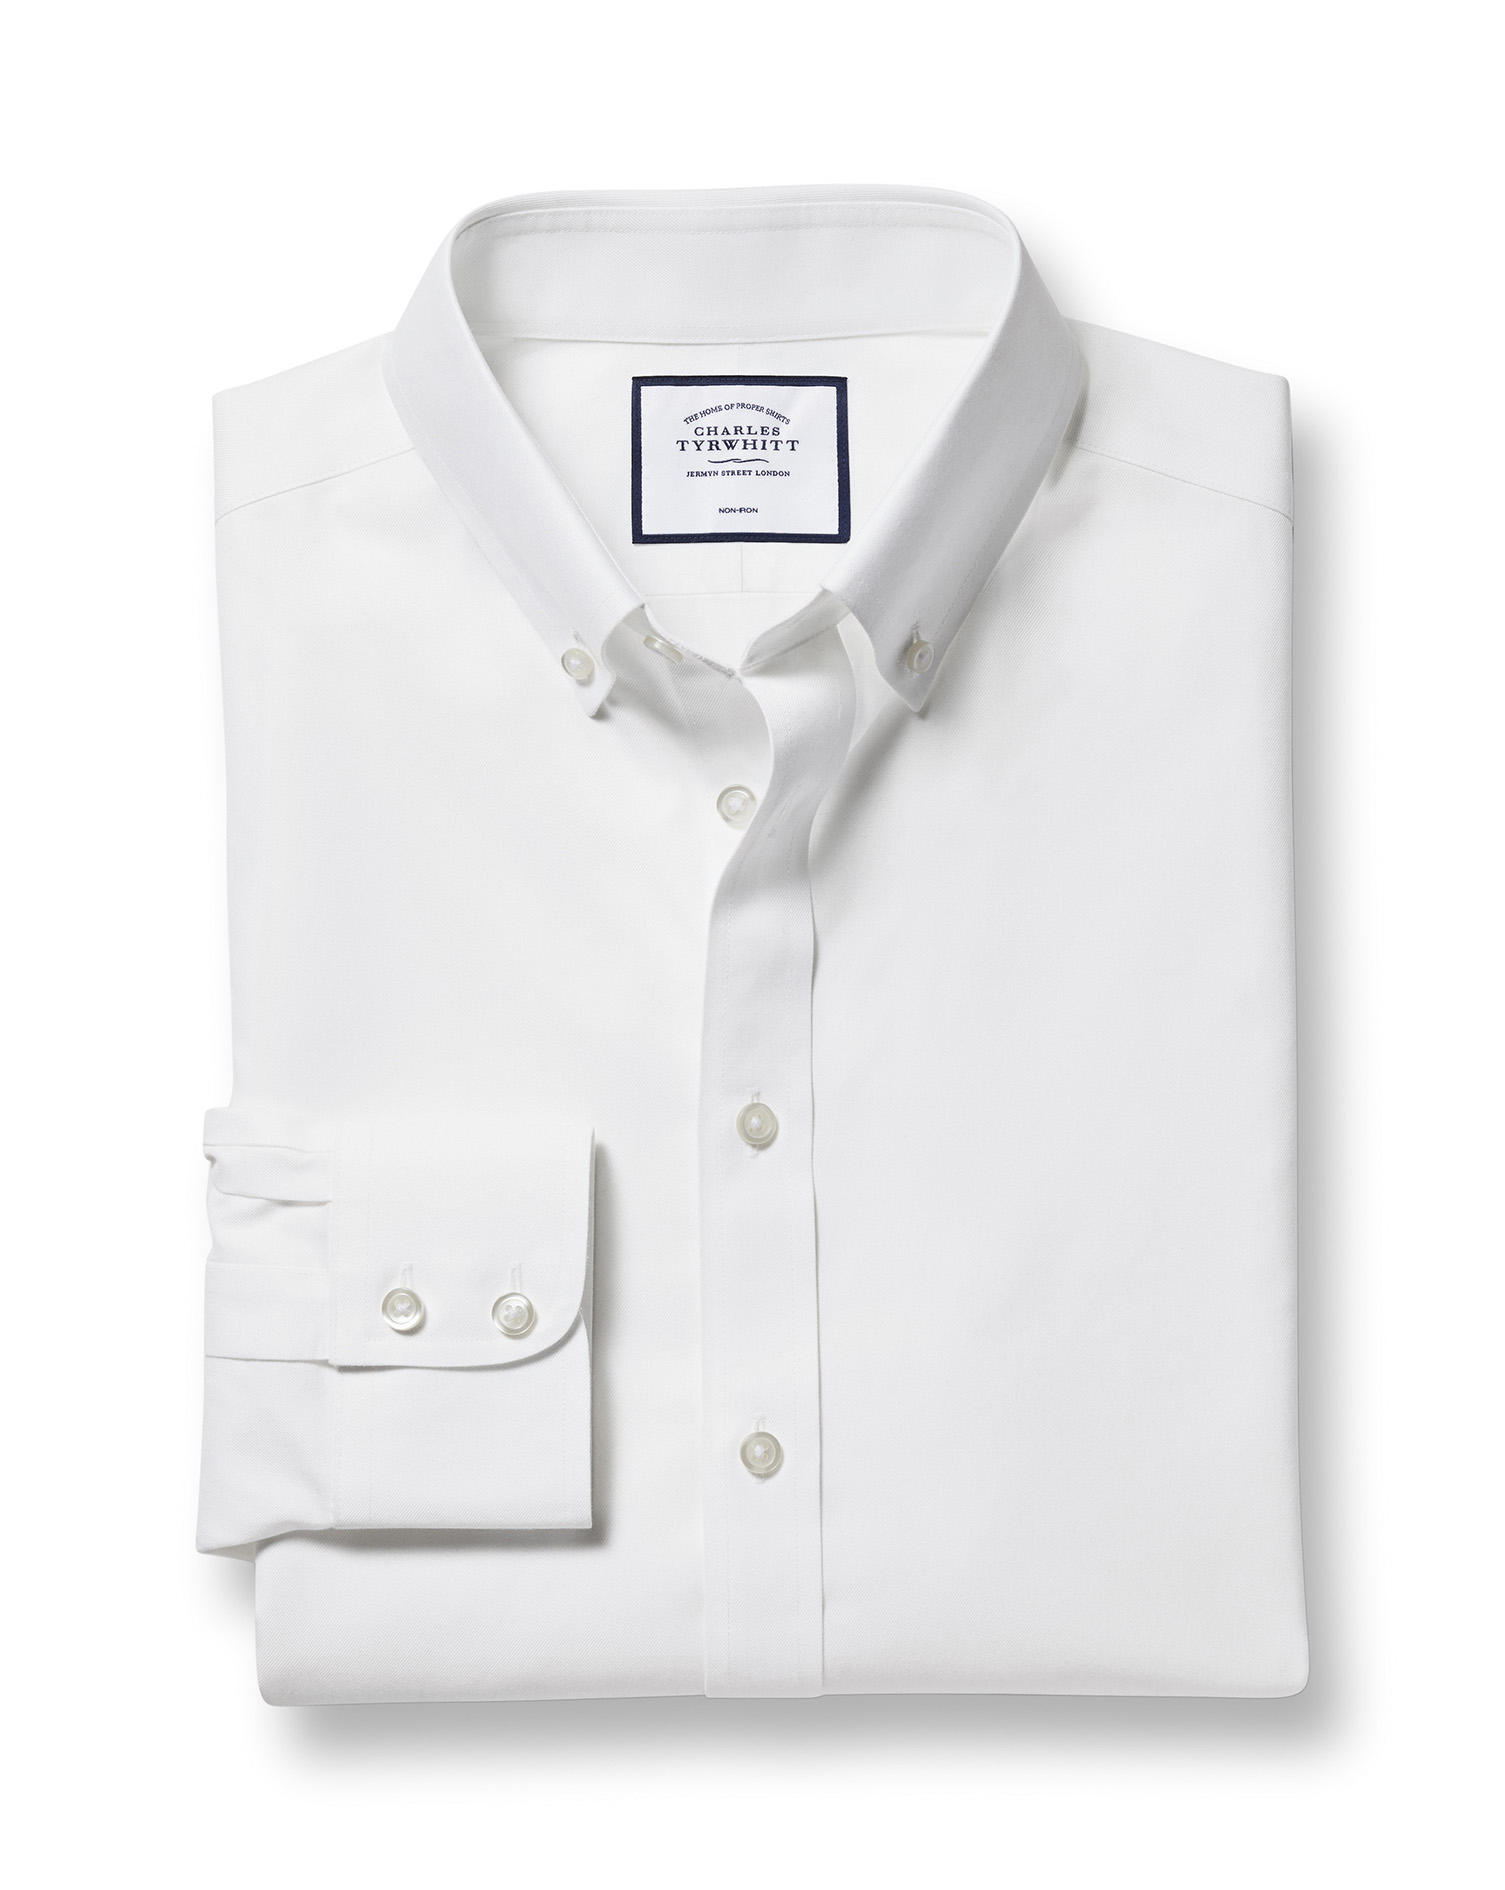 Classic Fit White Button-Down Collar Non-Iron Twill Cotton Formal Shirt Single Cuff Size 15.5/34 by